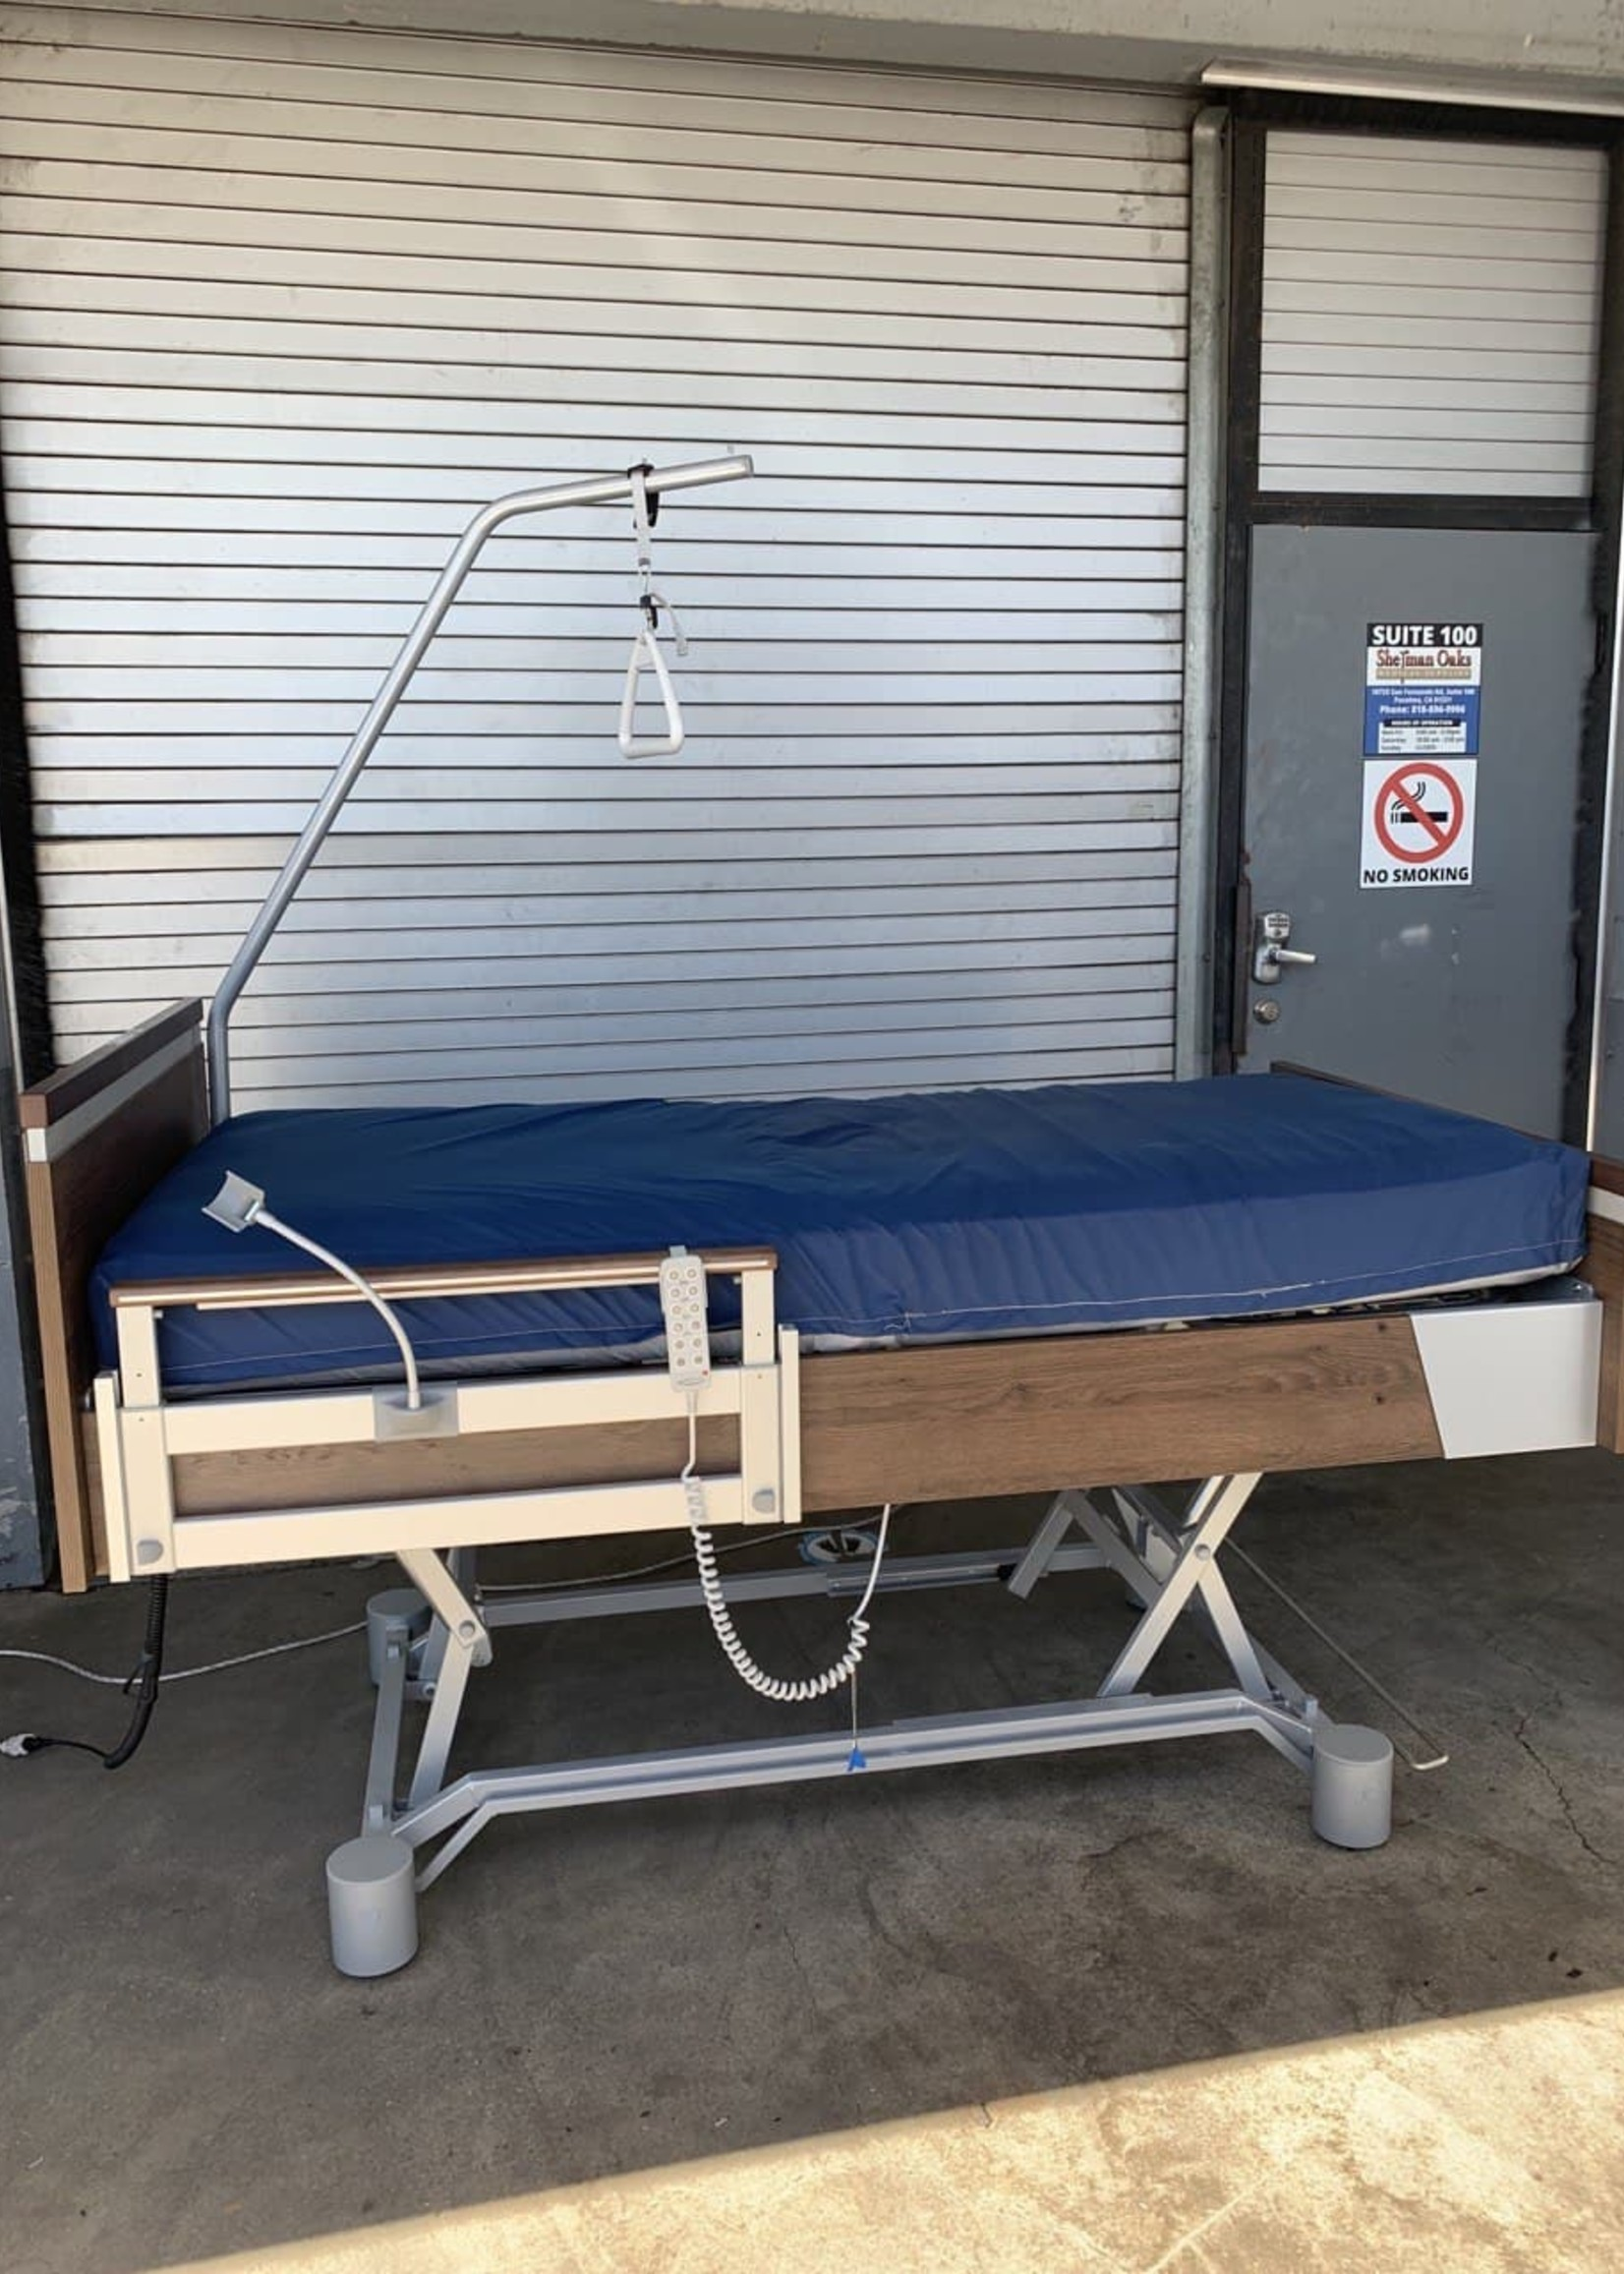 SonderCare Aura Deluxe Hospital Bed (Used)